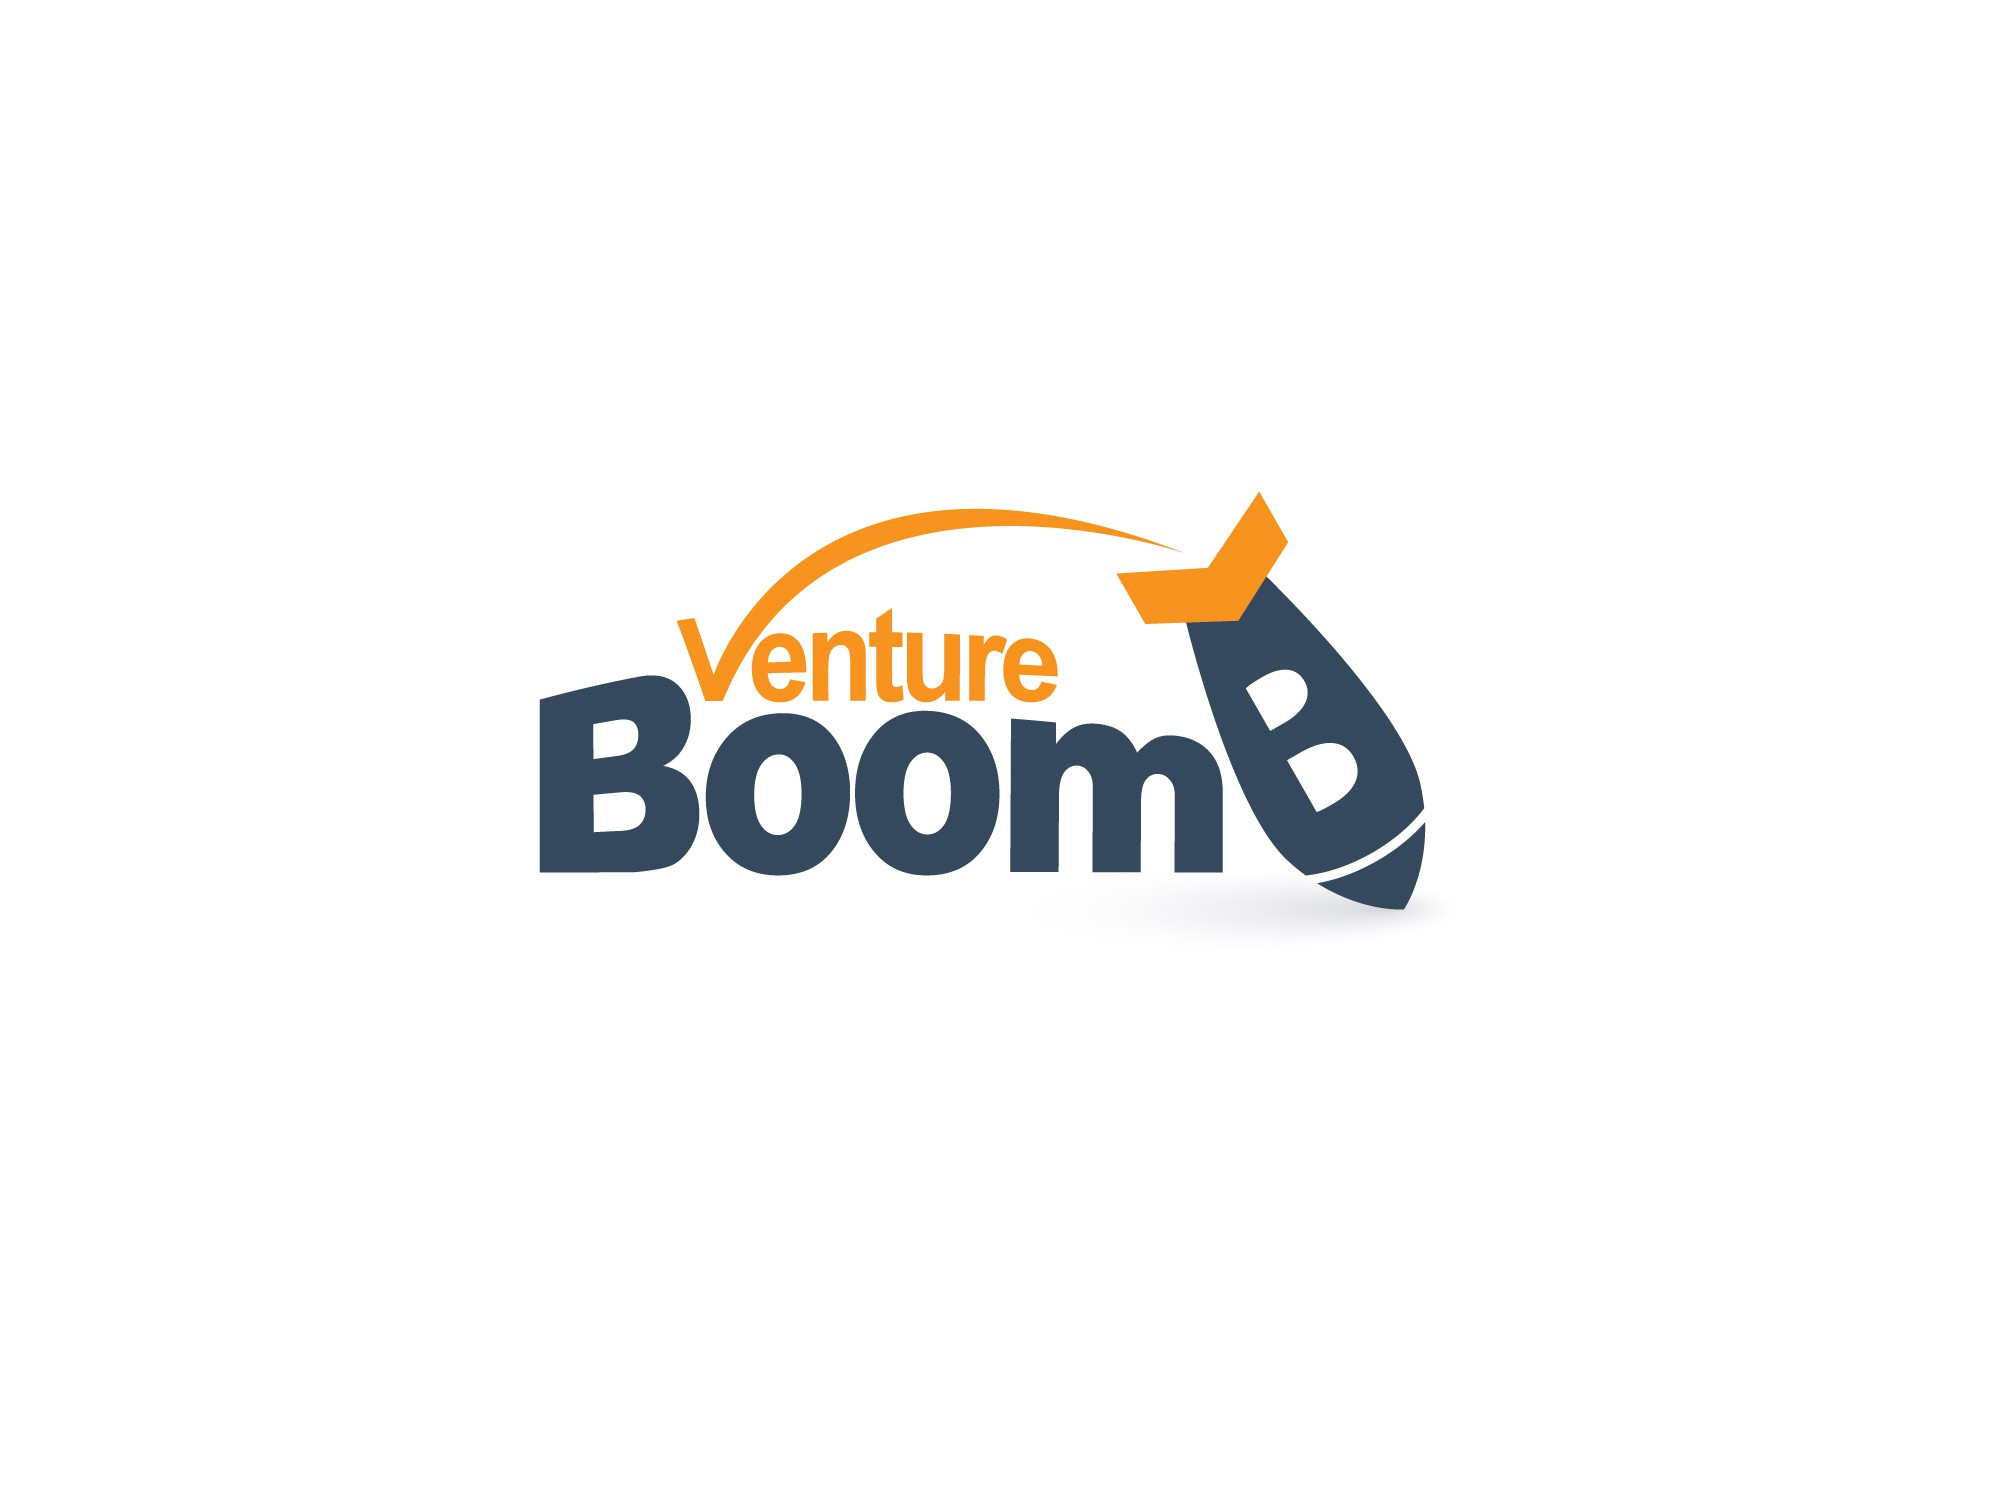 Create a minimalists conference logo for VentureBoom